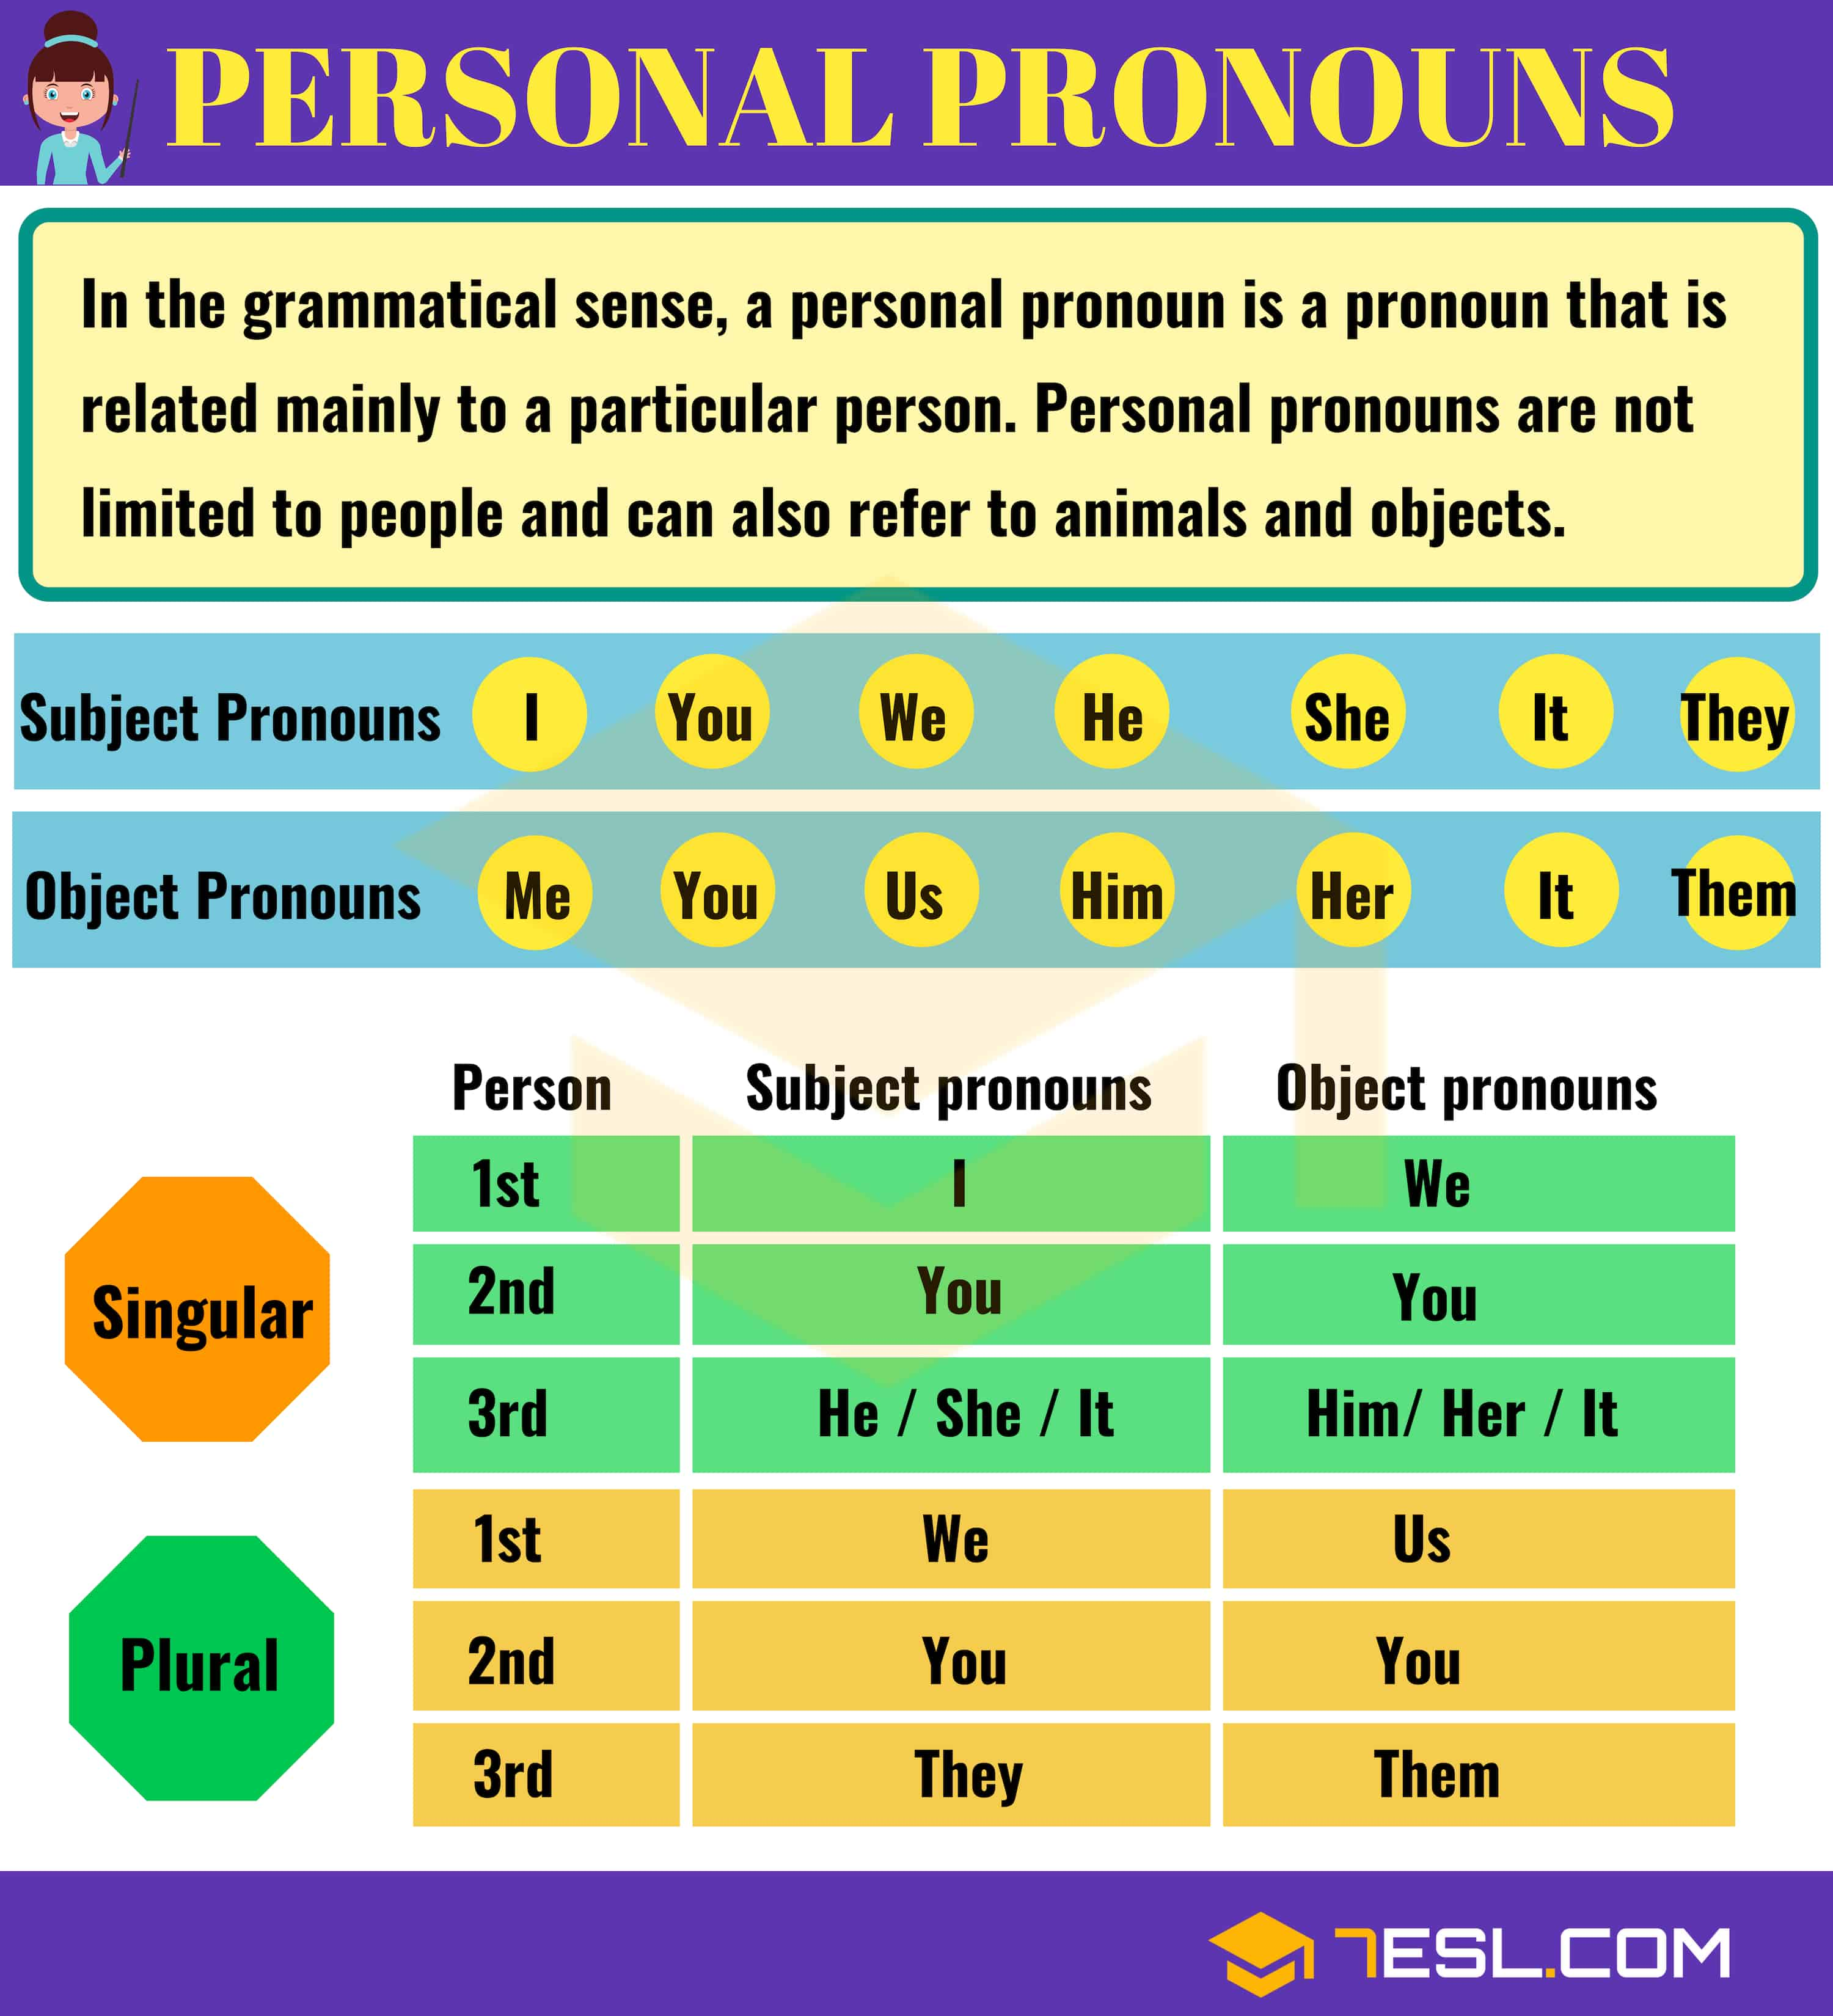 pronouns pronoun definition example personal examples object english rules subject grammar epicene 7esl he reflexive verb